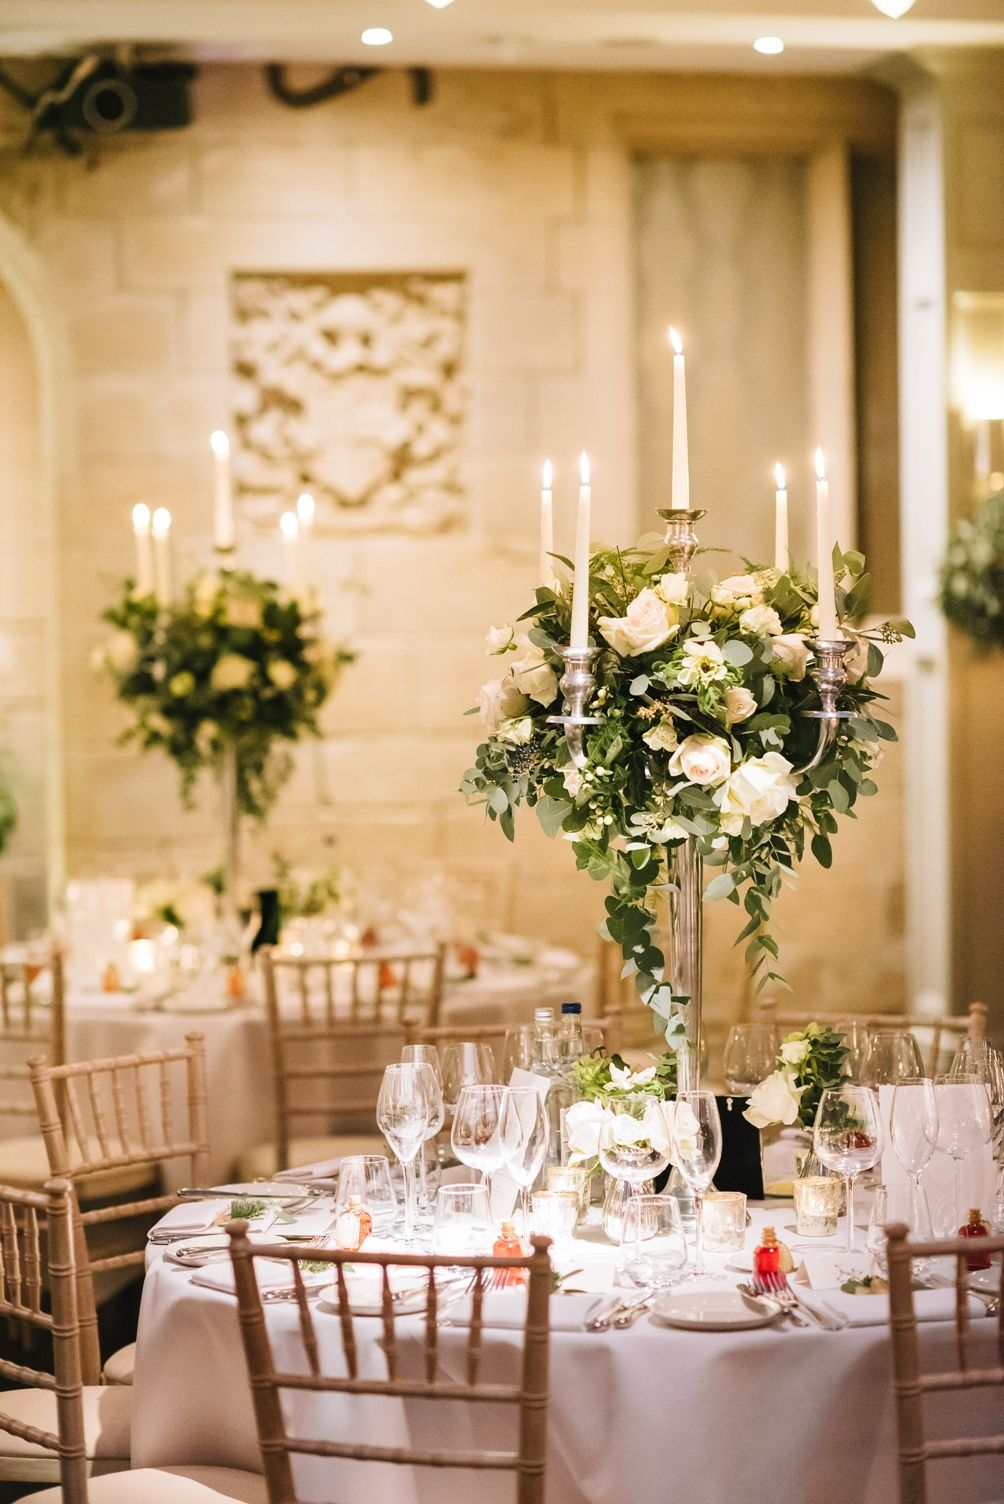 Floral Designs And Full Event Styling By Ava Event Styling A